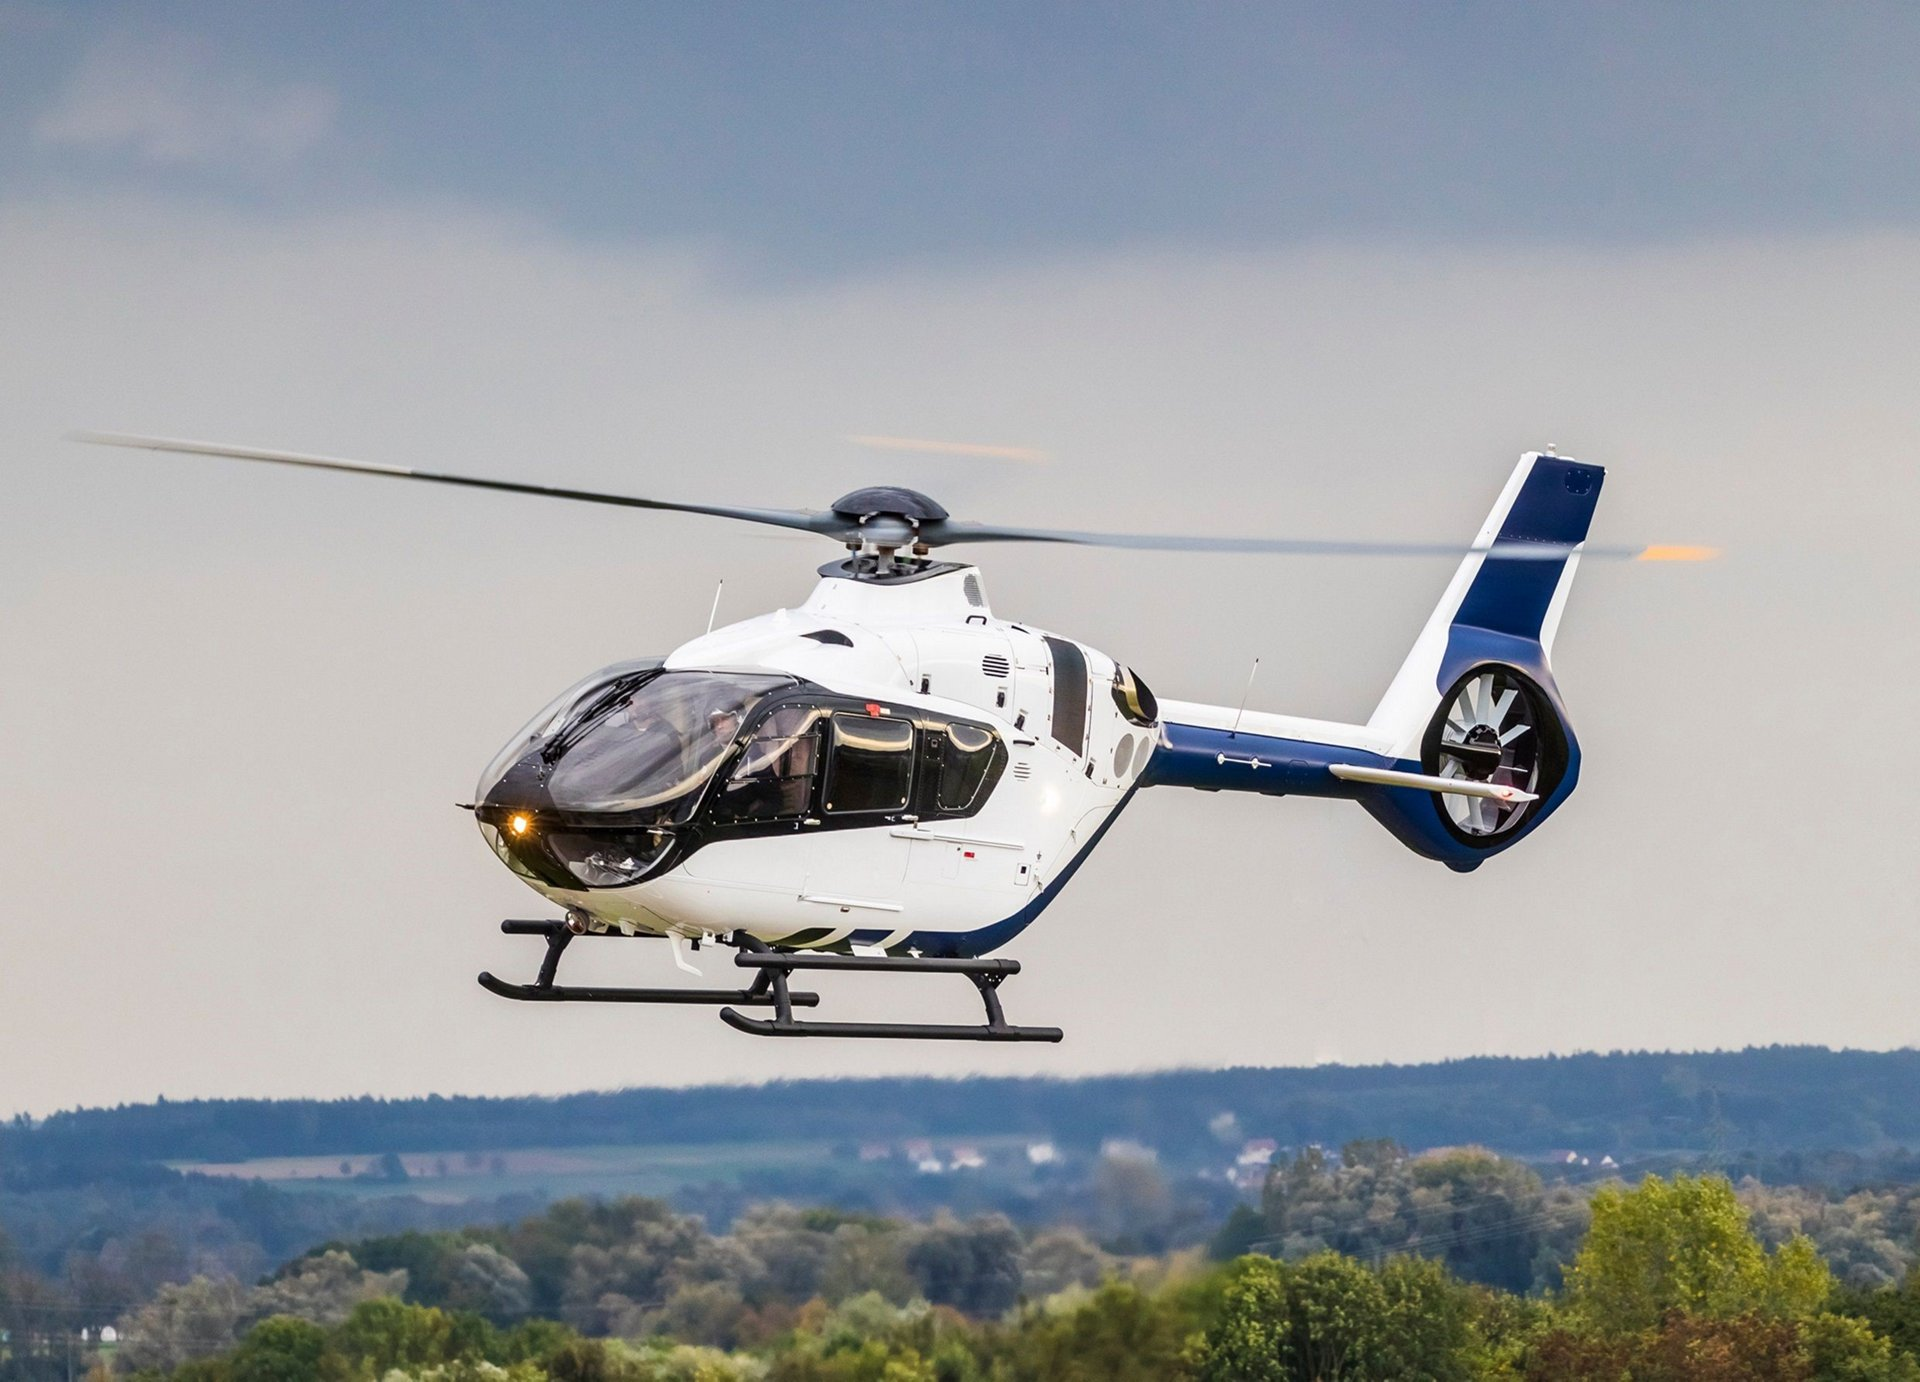 The European Union Aviation Safety Agency (EASA) has certified a new Alternate Gross Weight (AGW) for the latest version of the H135 family of helicopters.